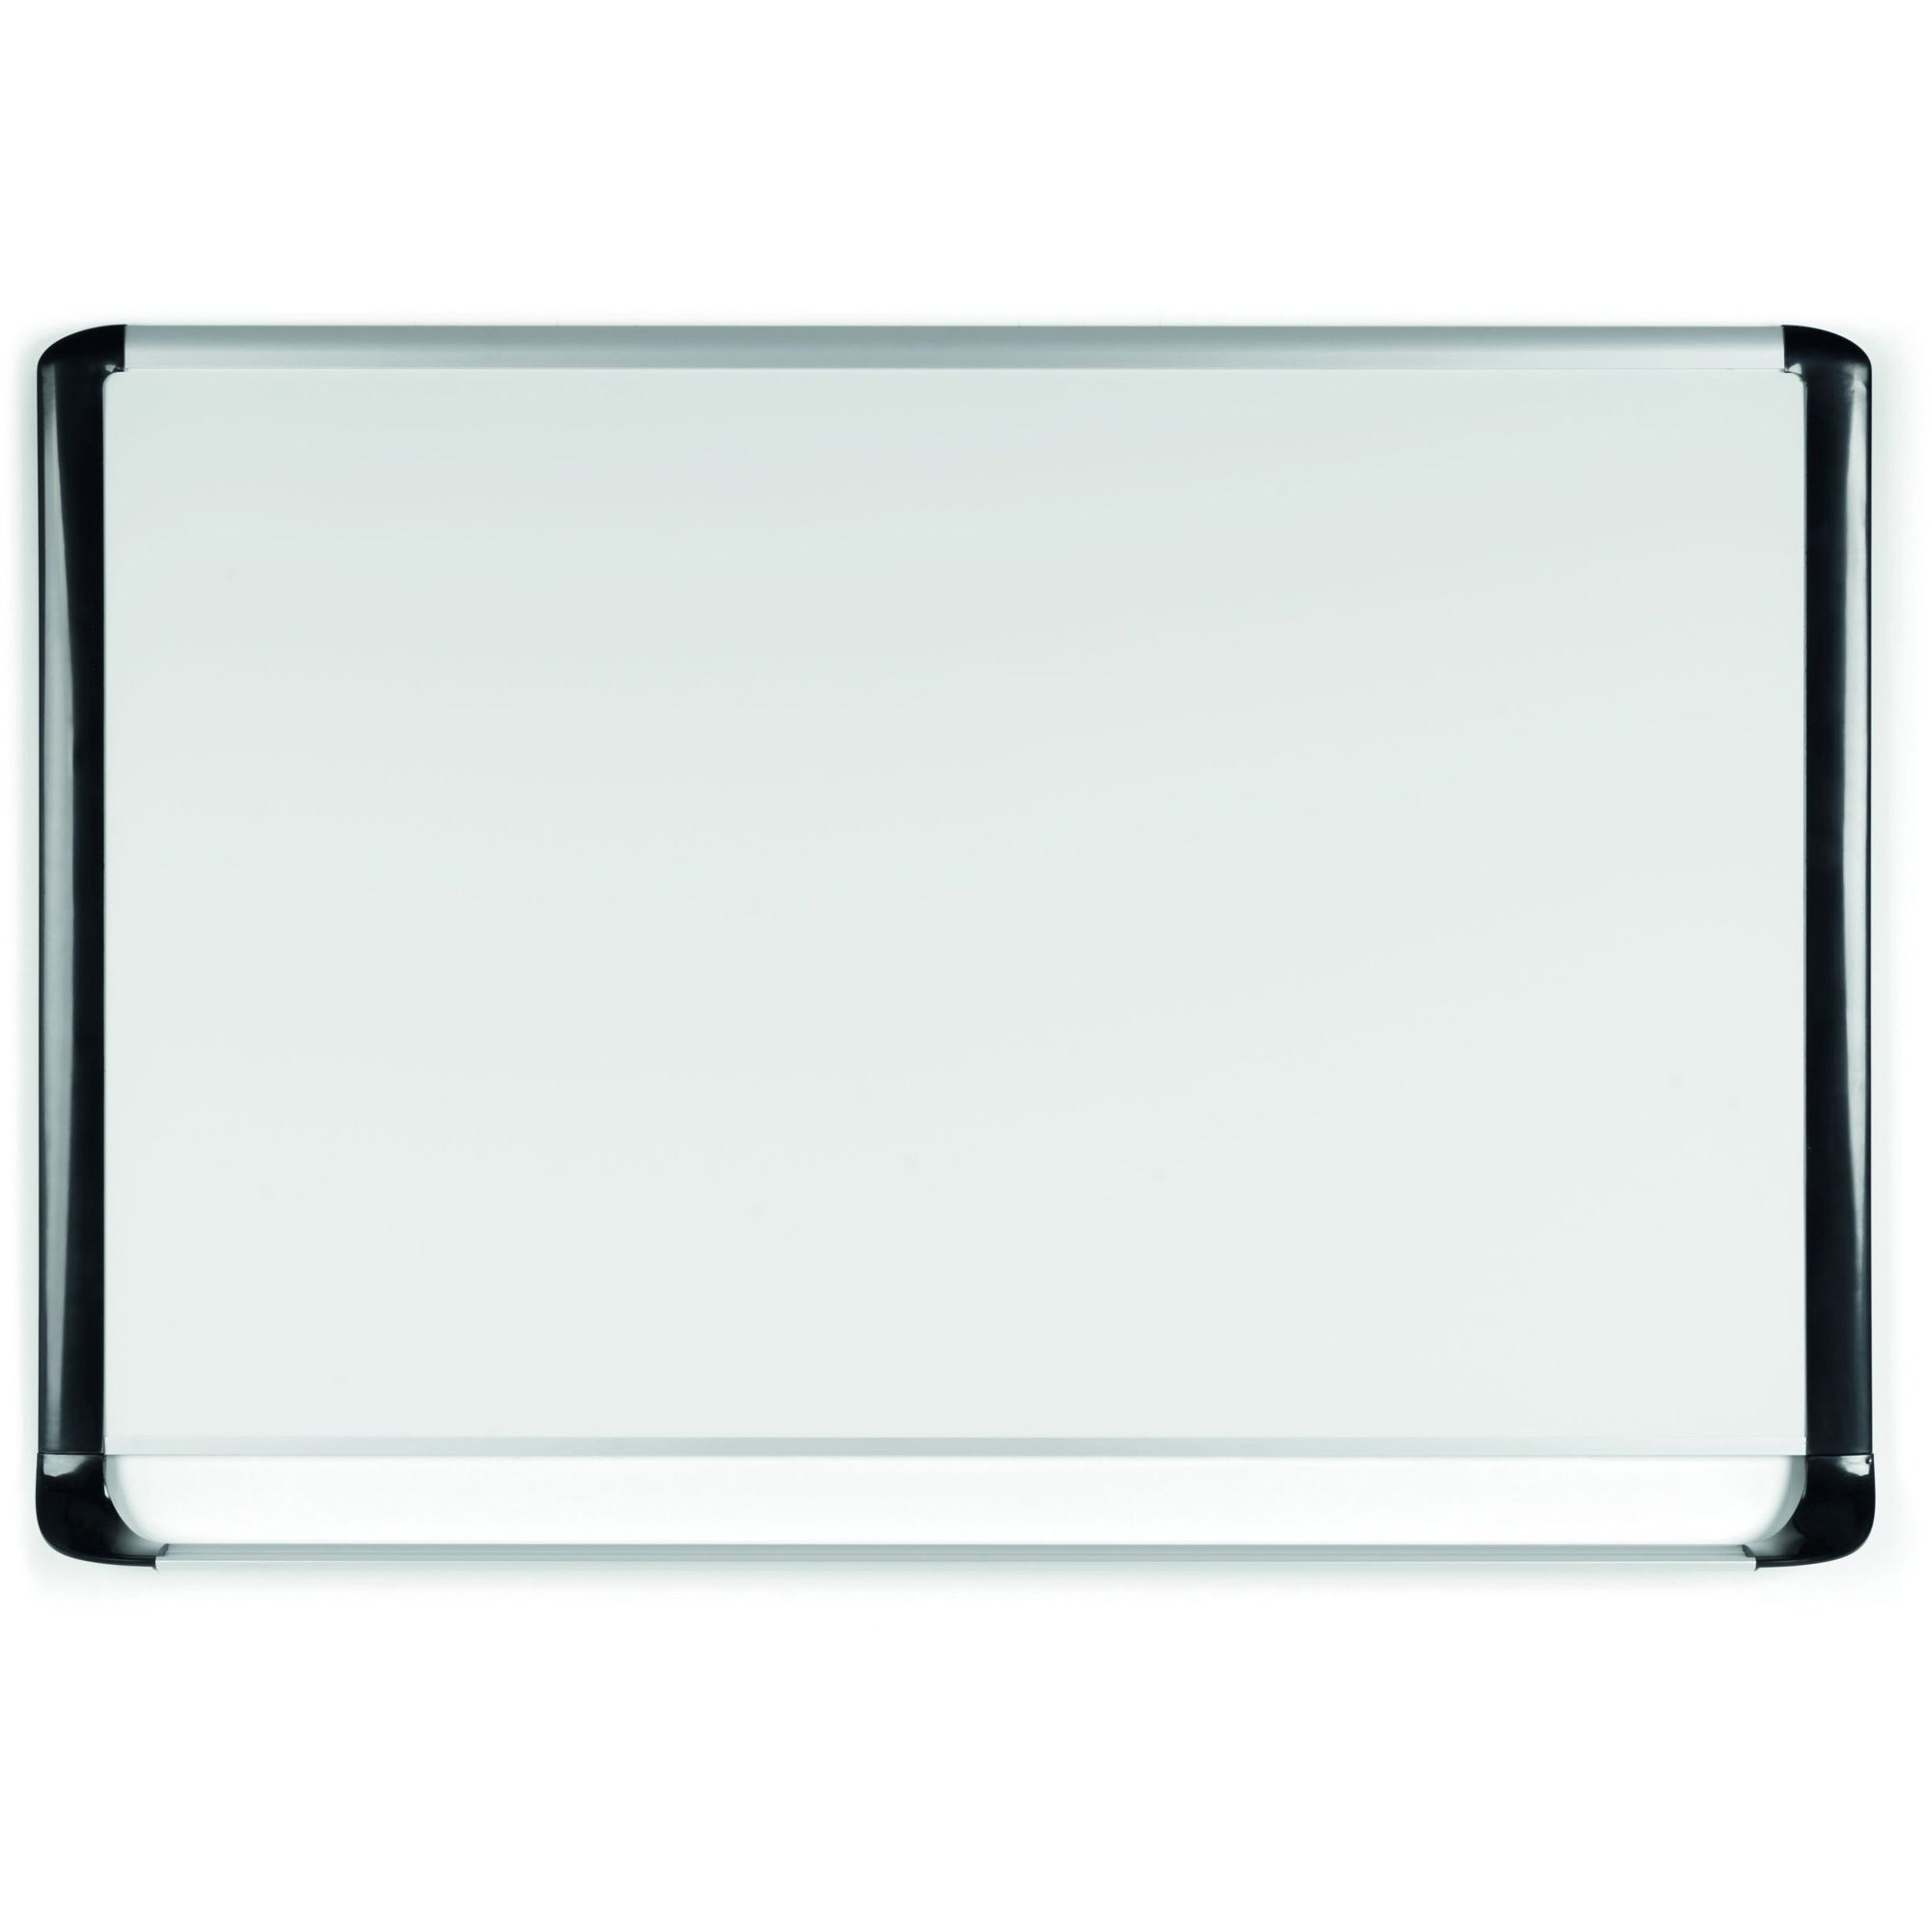 Bi-silque S.a Mastervision Mvi Platinum Plus Dry-erase Board - 48 (4 Ft) Width X 36 (3 Ft) Height - White Porcelain Surface - Silver/black Aluminum/plastic Frame - Rectangle - Assembly Required - 1 Each